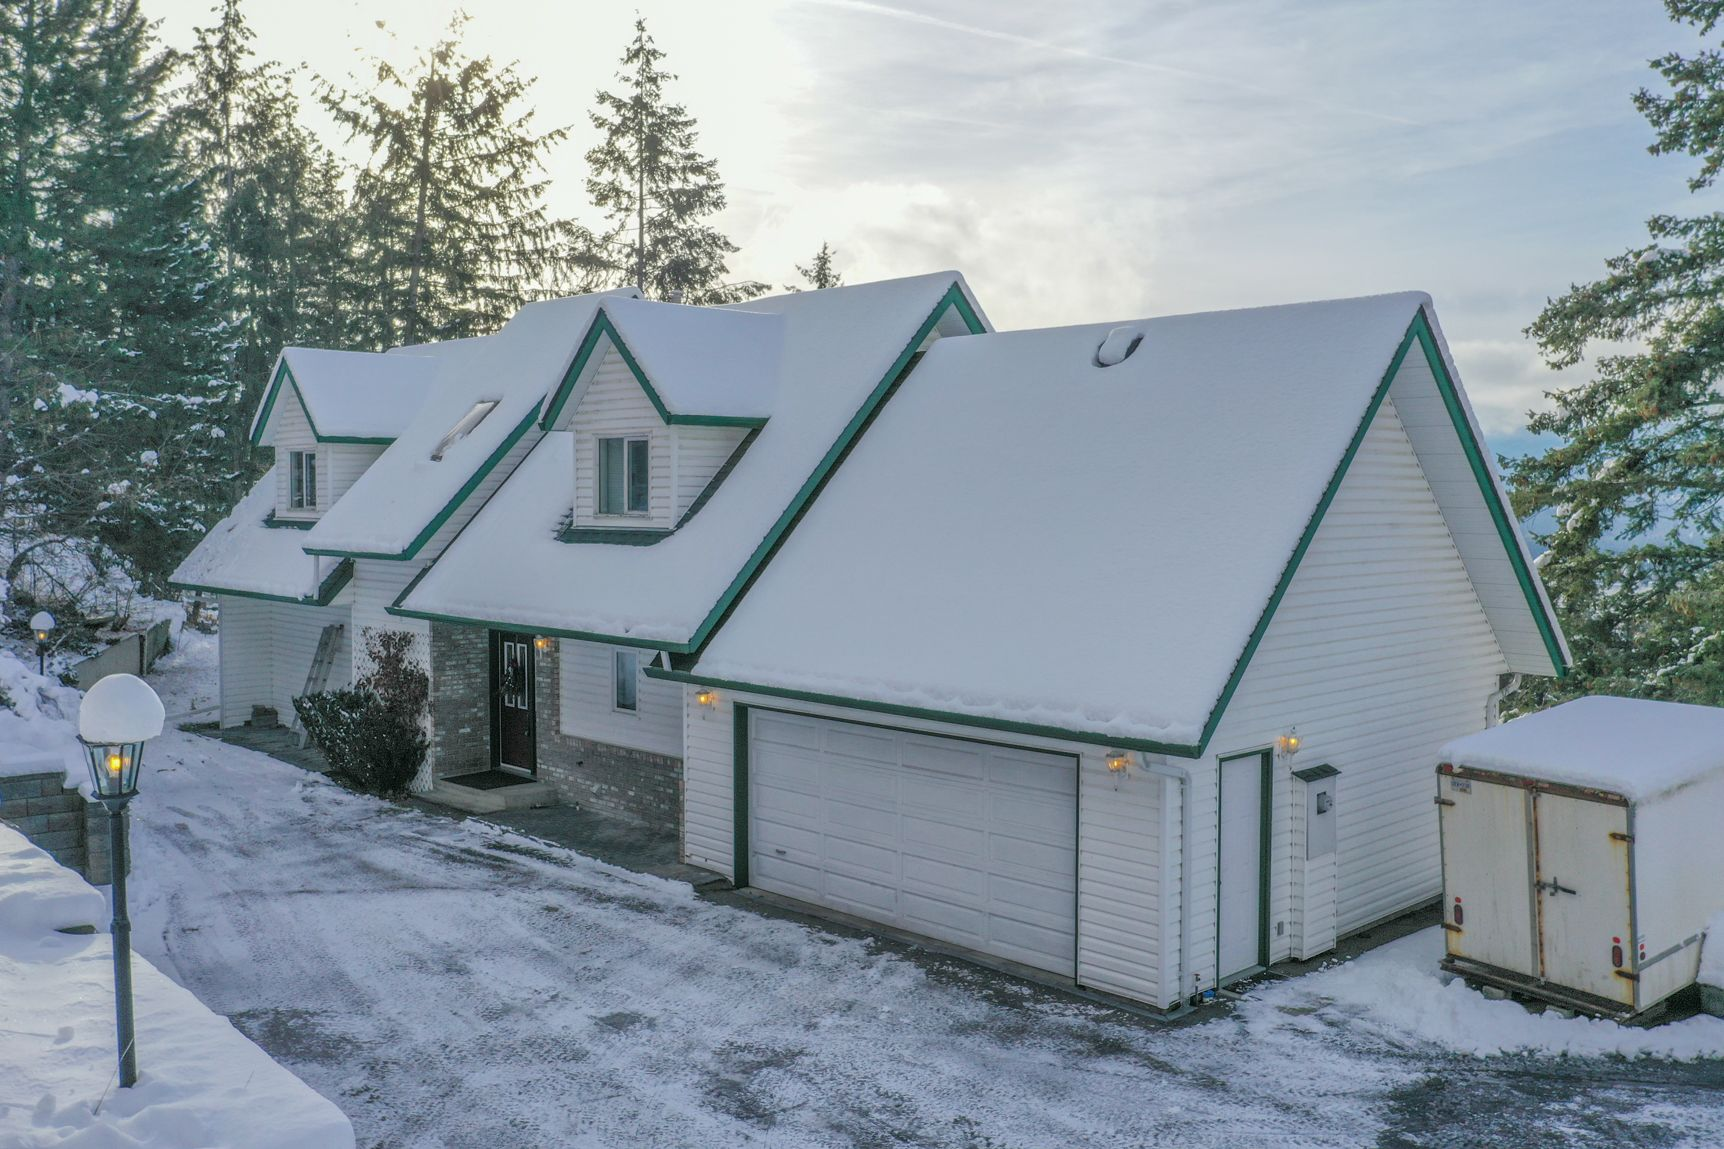 Main Photo: 133 Goldclaim Road in Vernon: House for sale : MLS®# 10221135